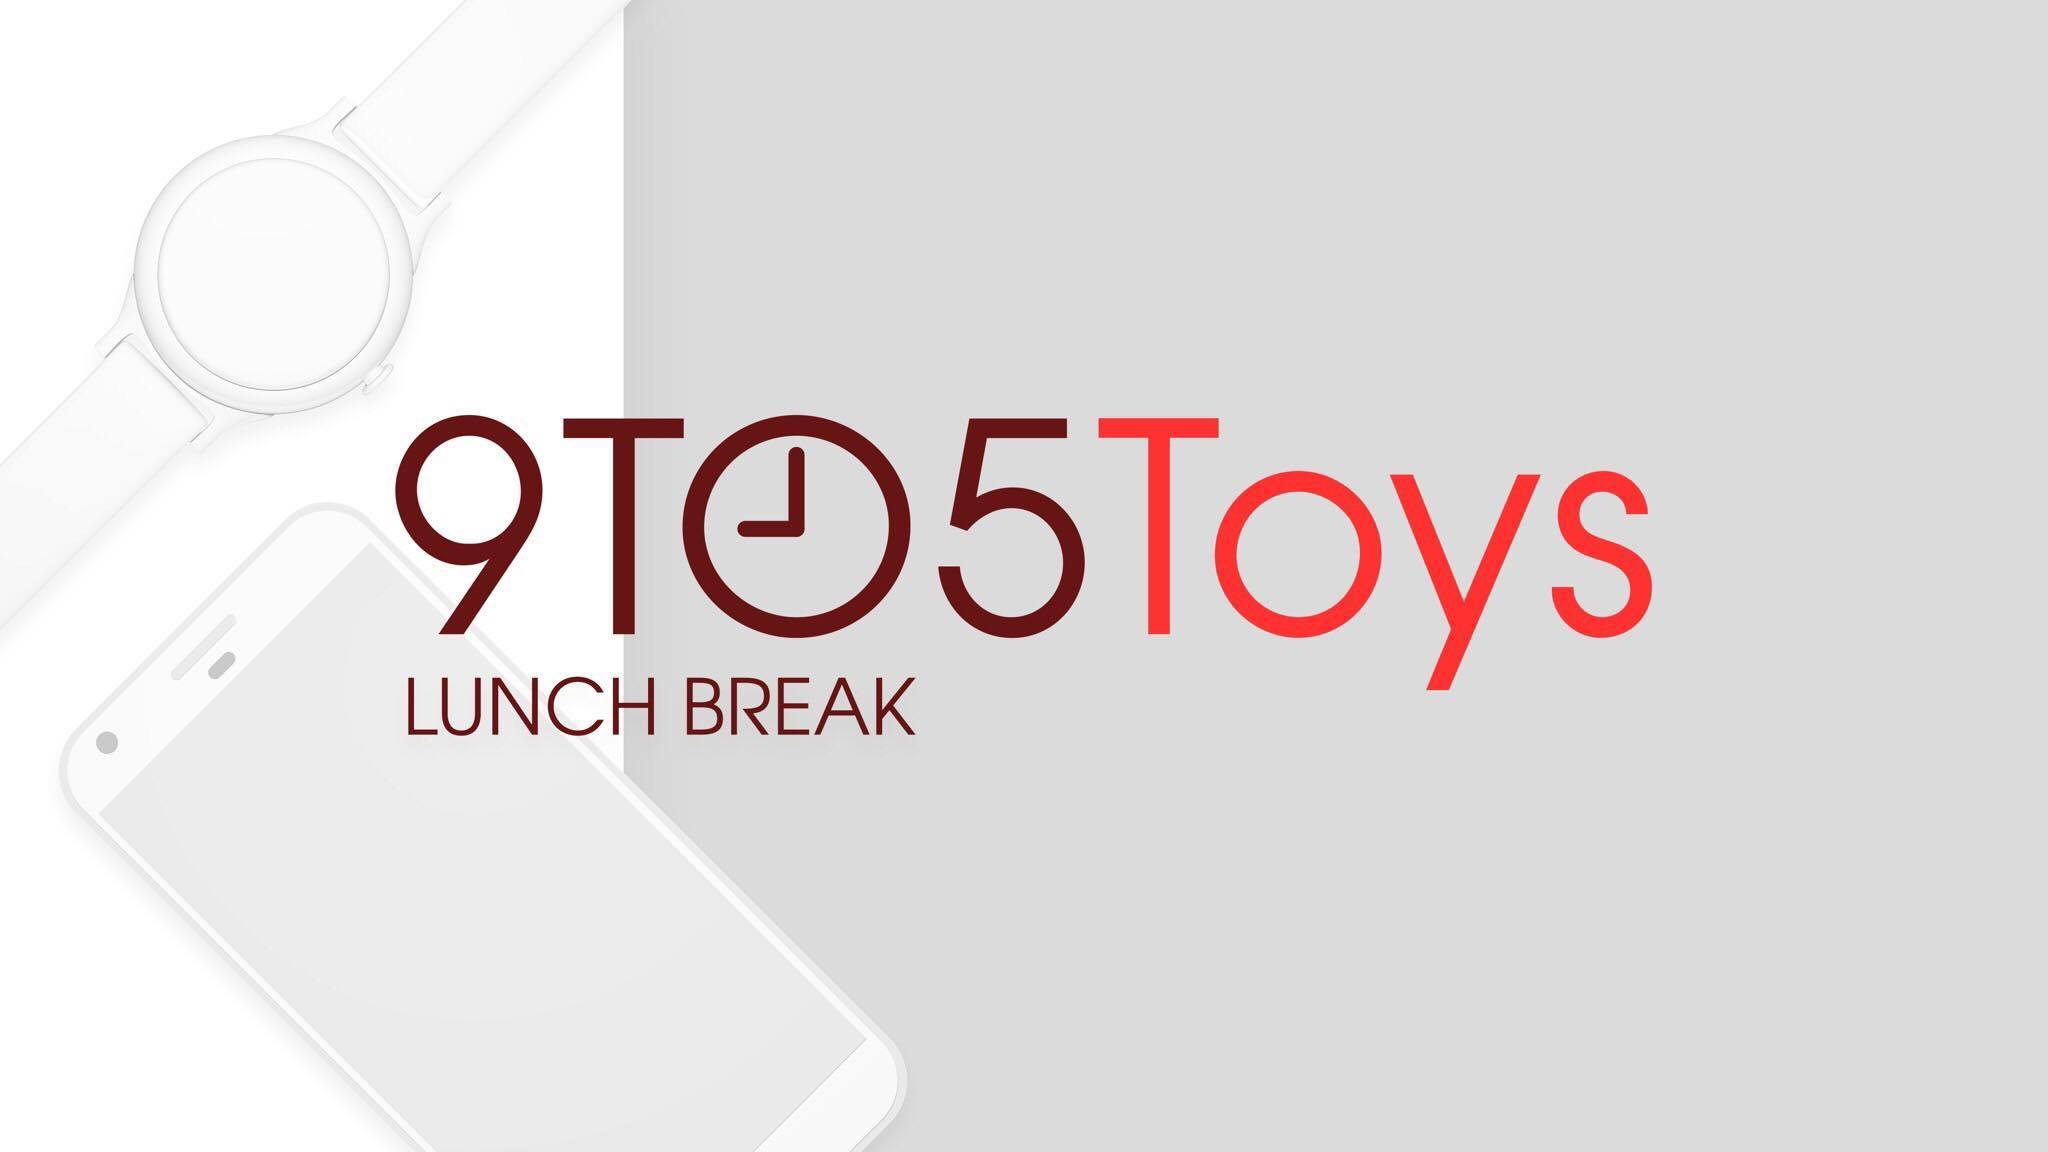 9to5toys lunch break philips hue smart light kit 30 google assistant speakers 20 apc 10 outlet ups 150 more